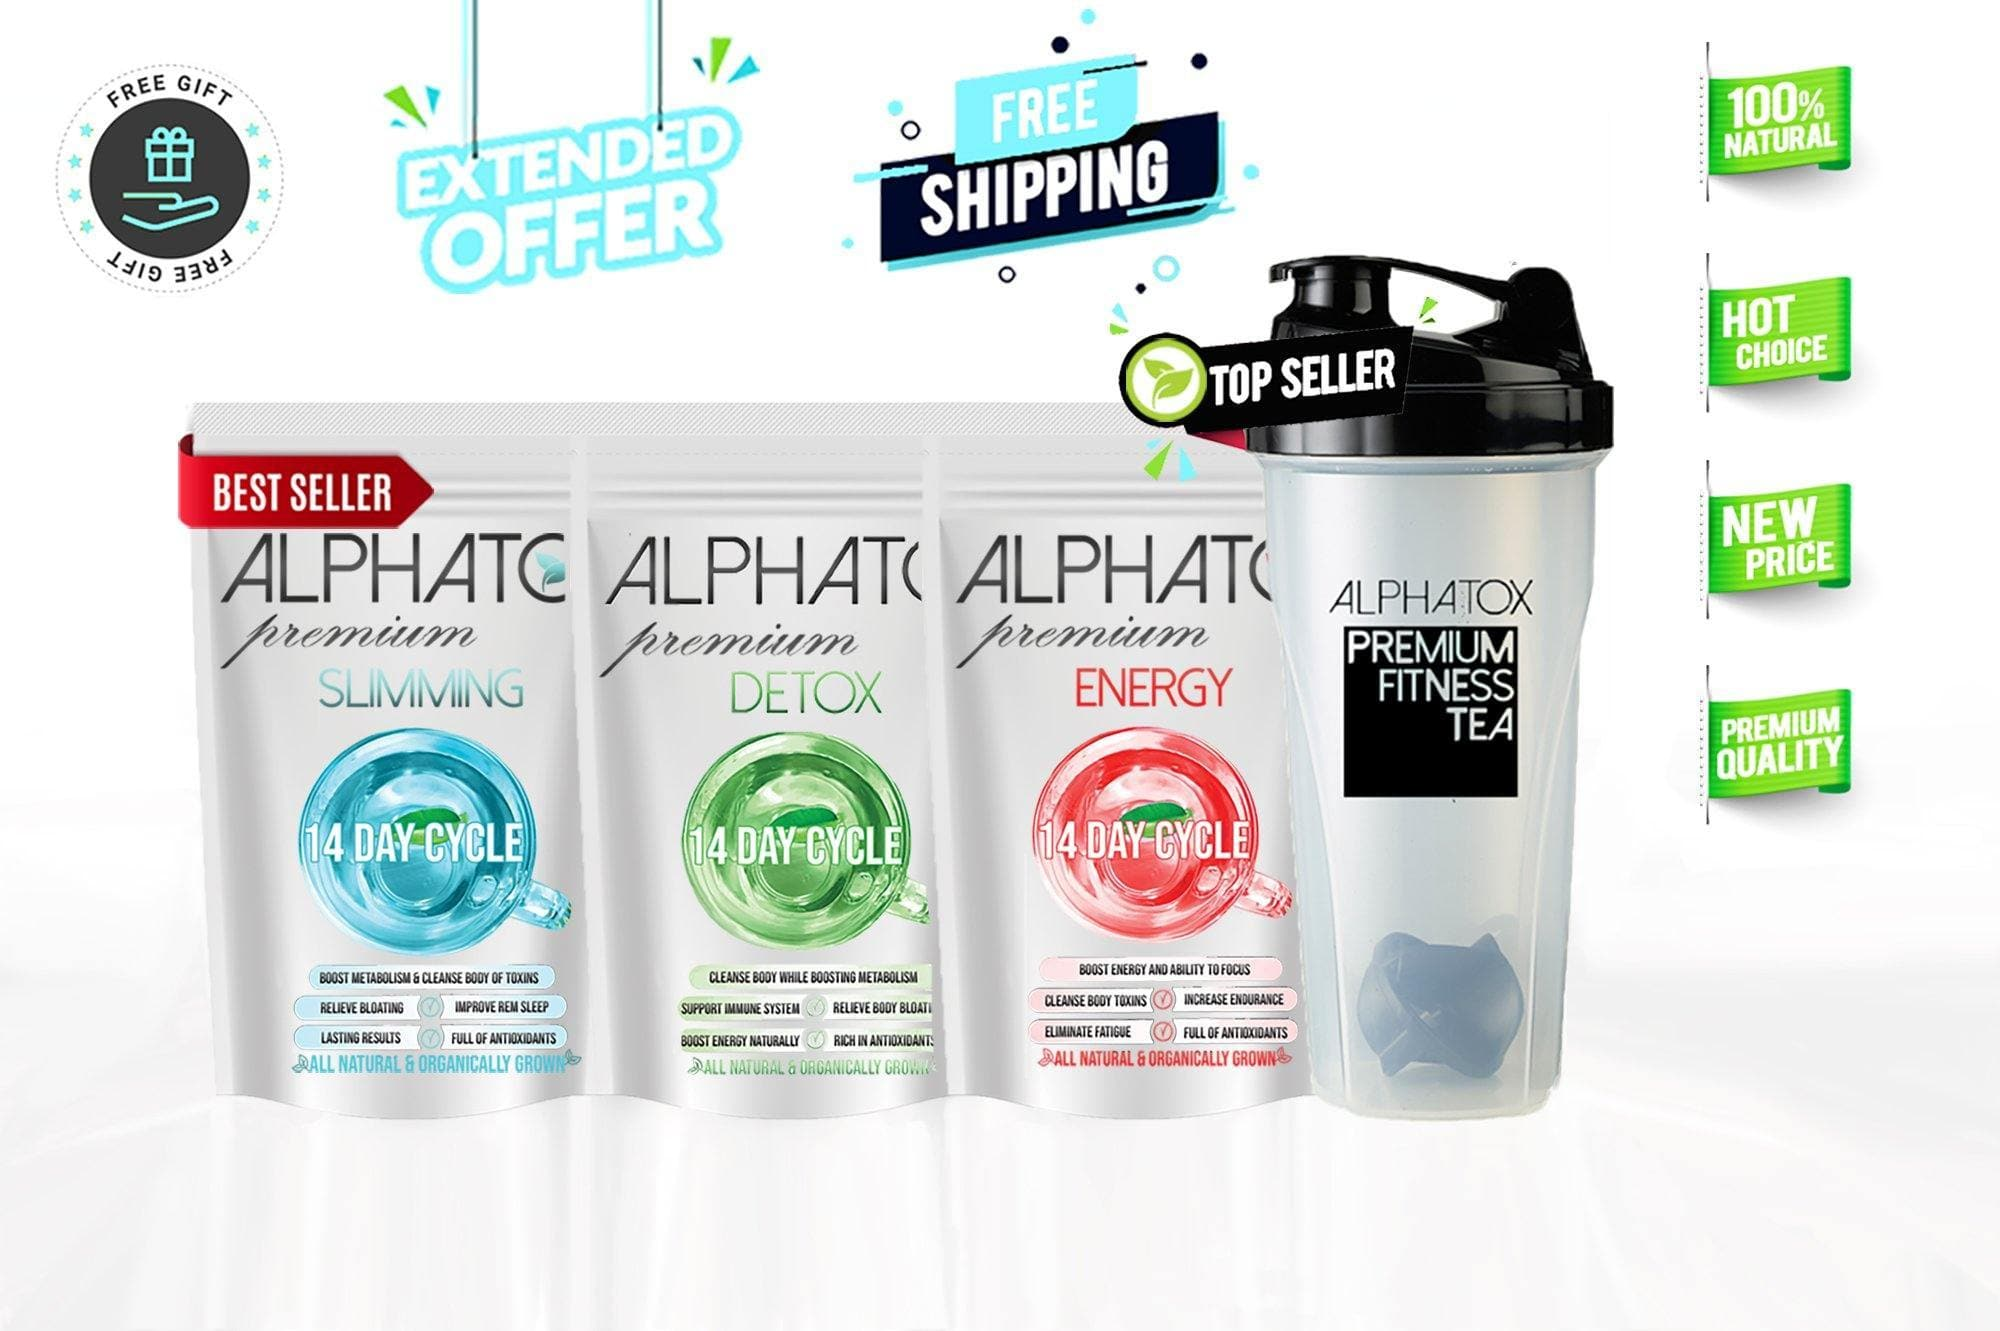 Alphatox Fitness Bundle (14 Day Quick Detox Program) - Alphatox Premium Fitness Teas